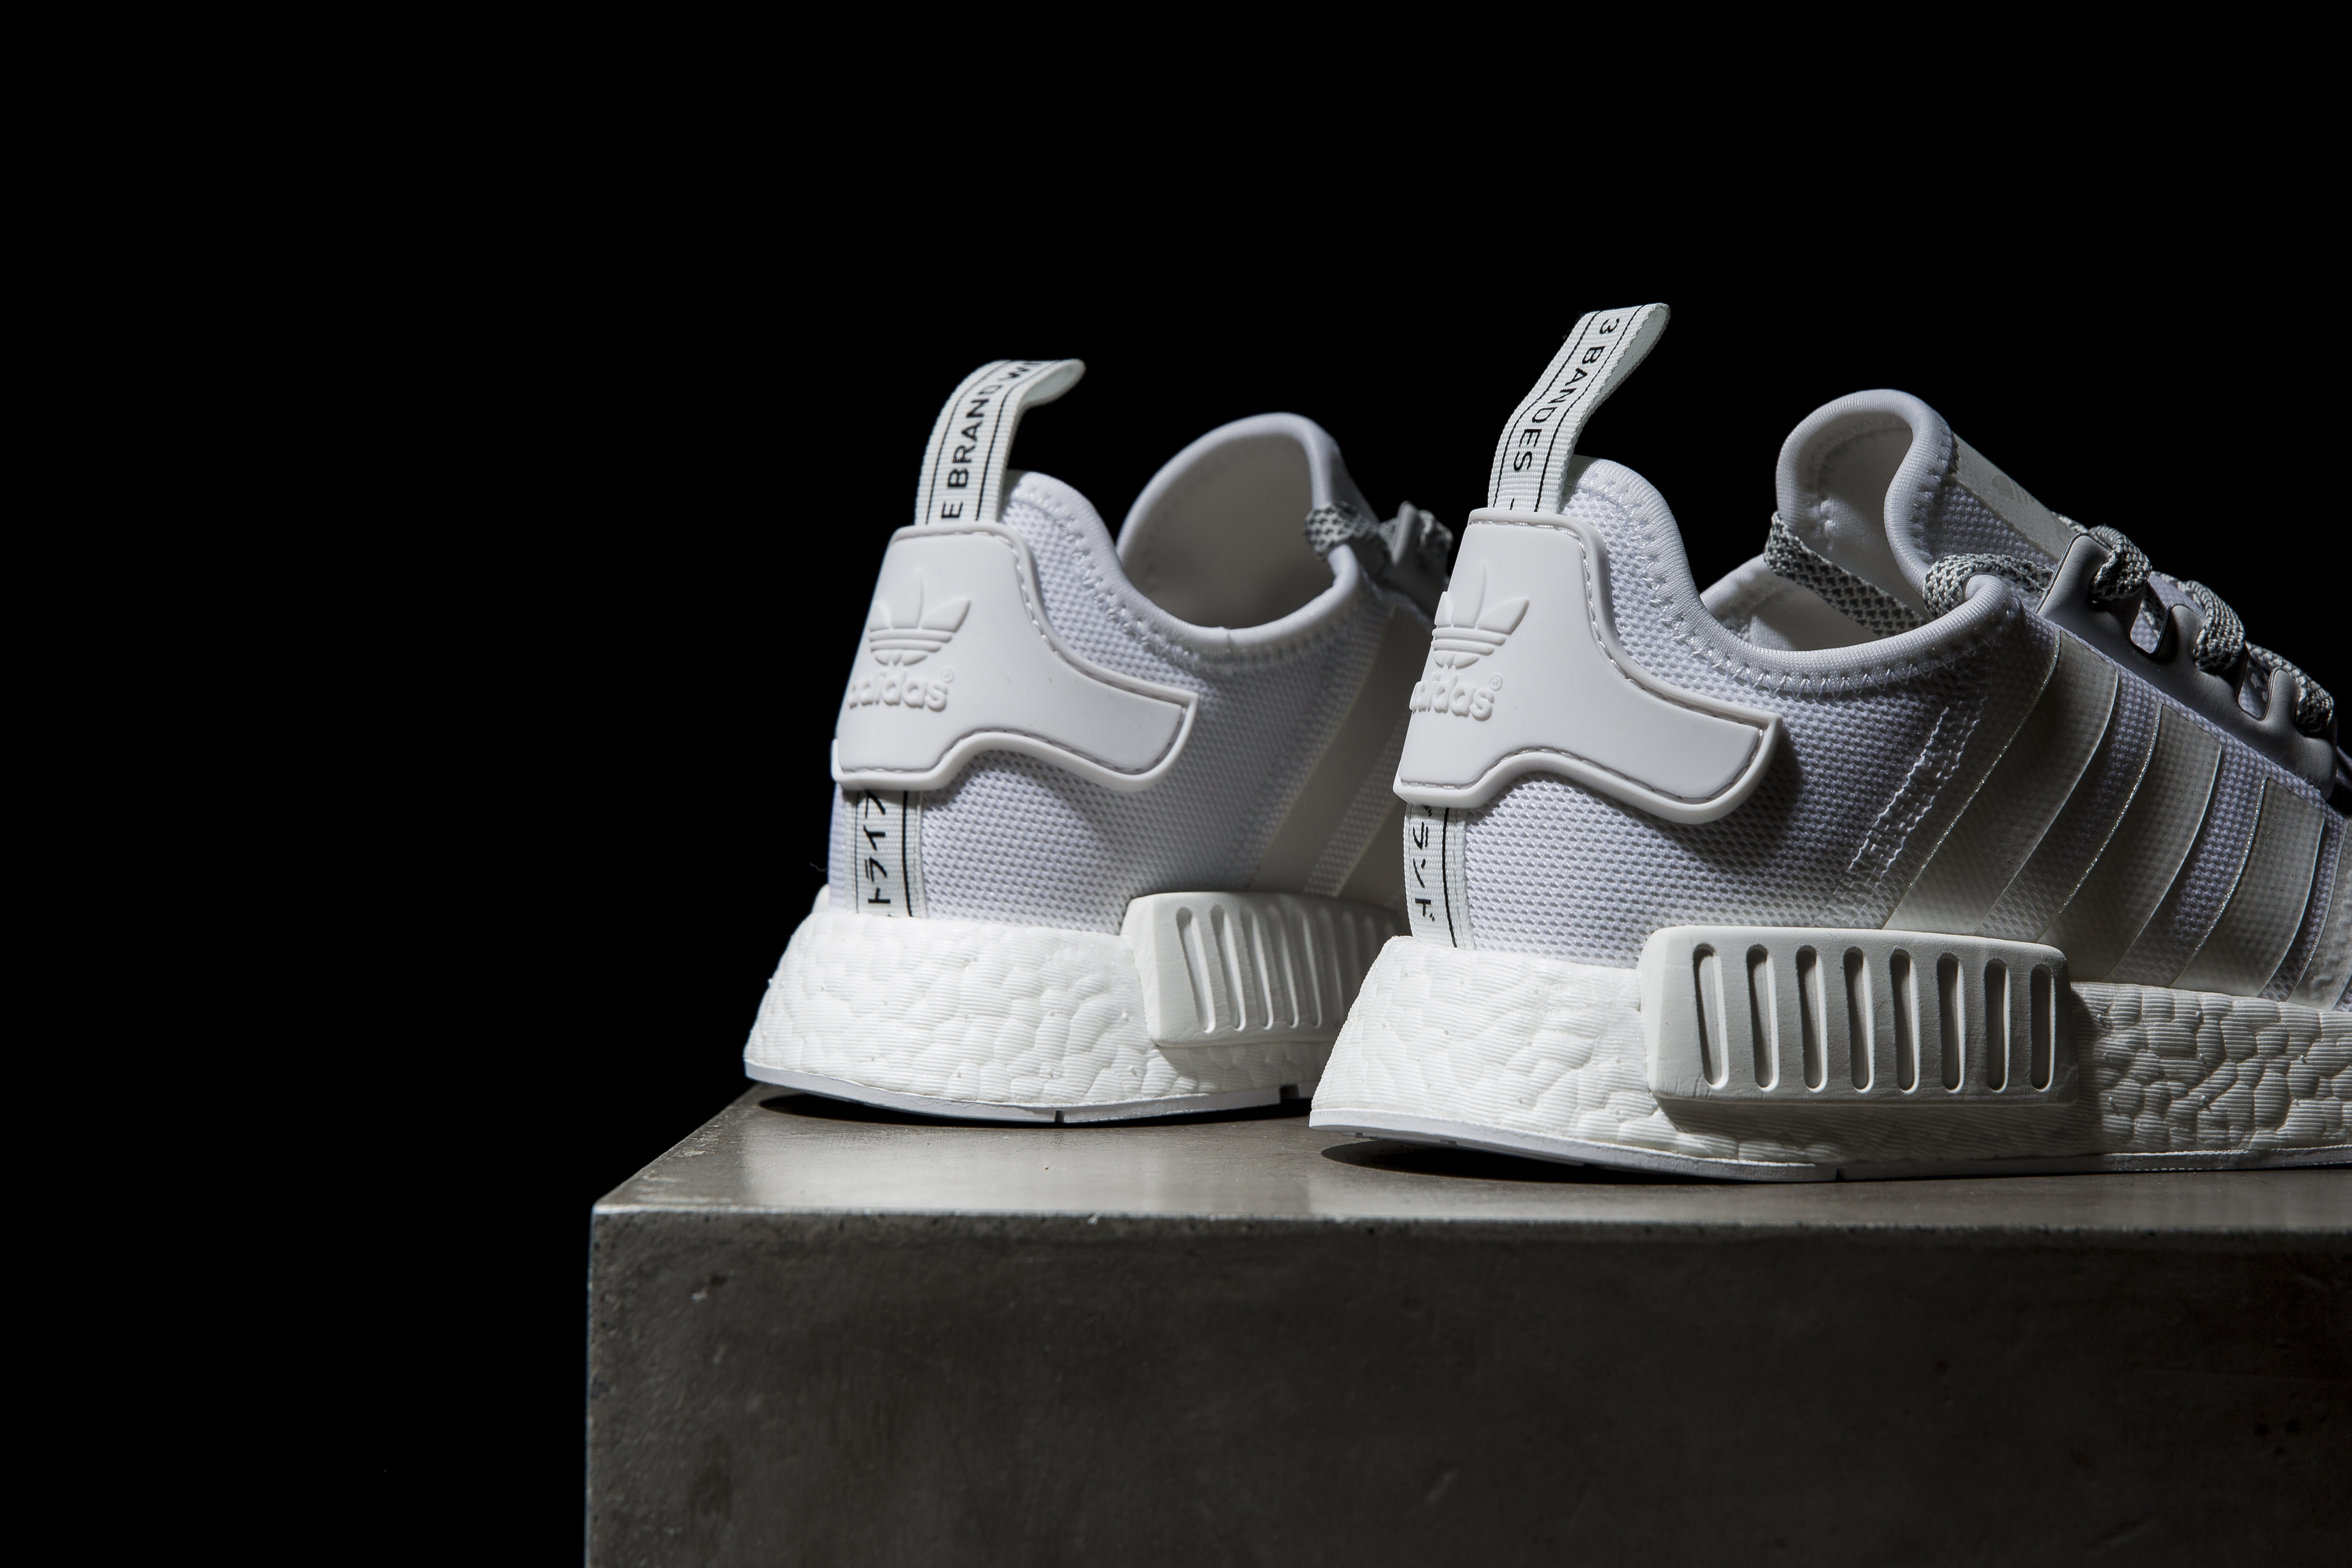 021d17ce361a1 adidas NMD Reflective Black and White